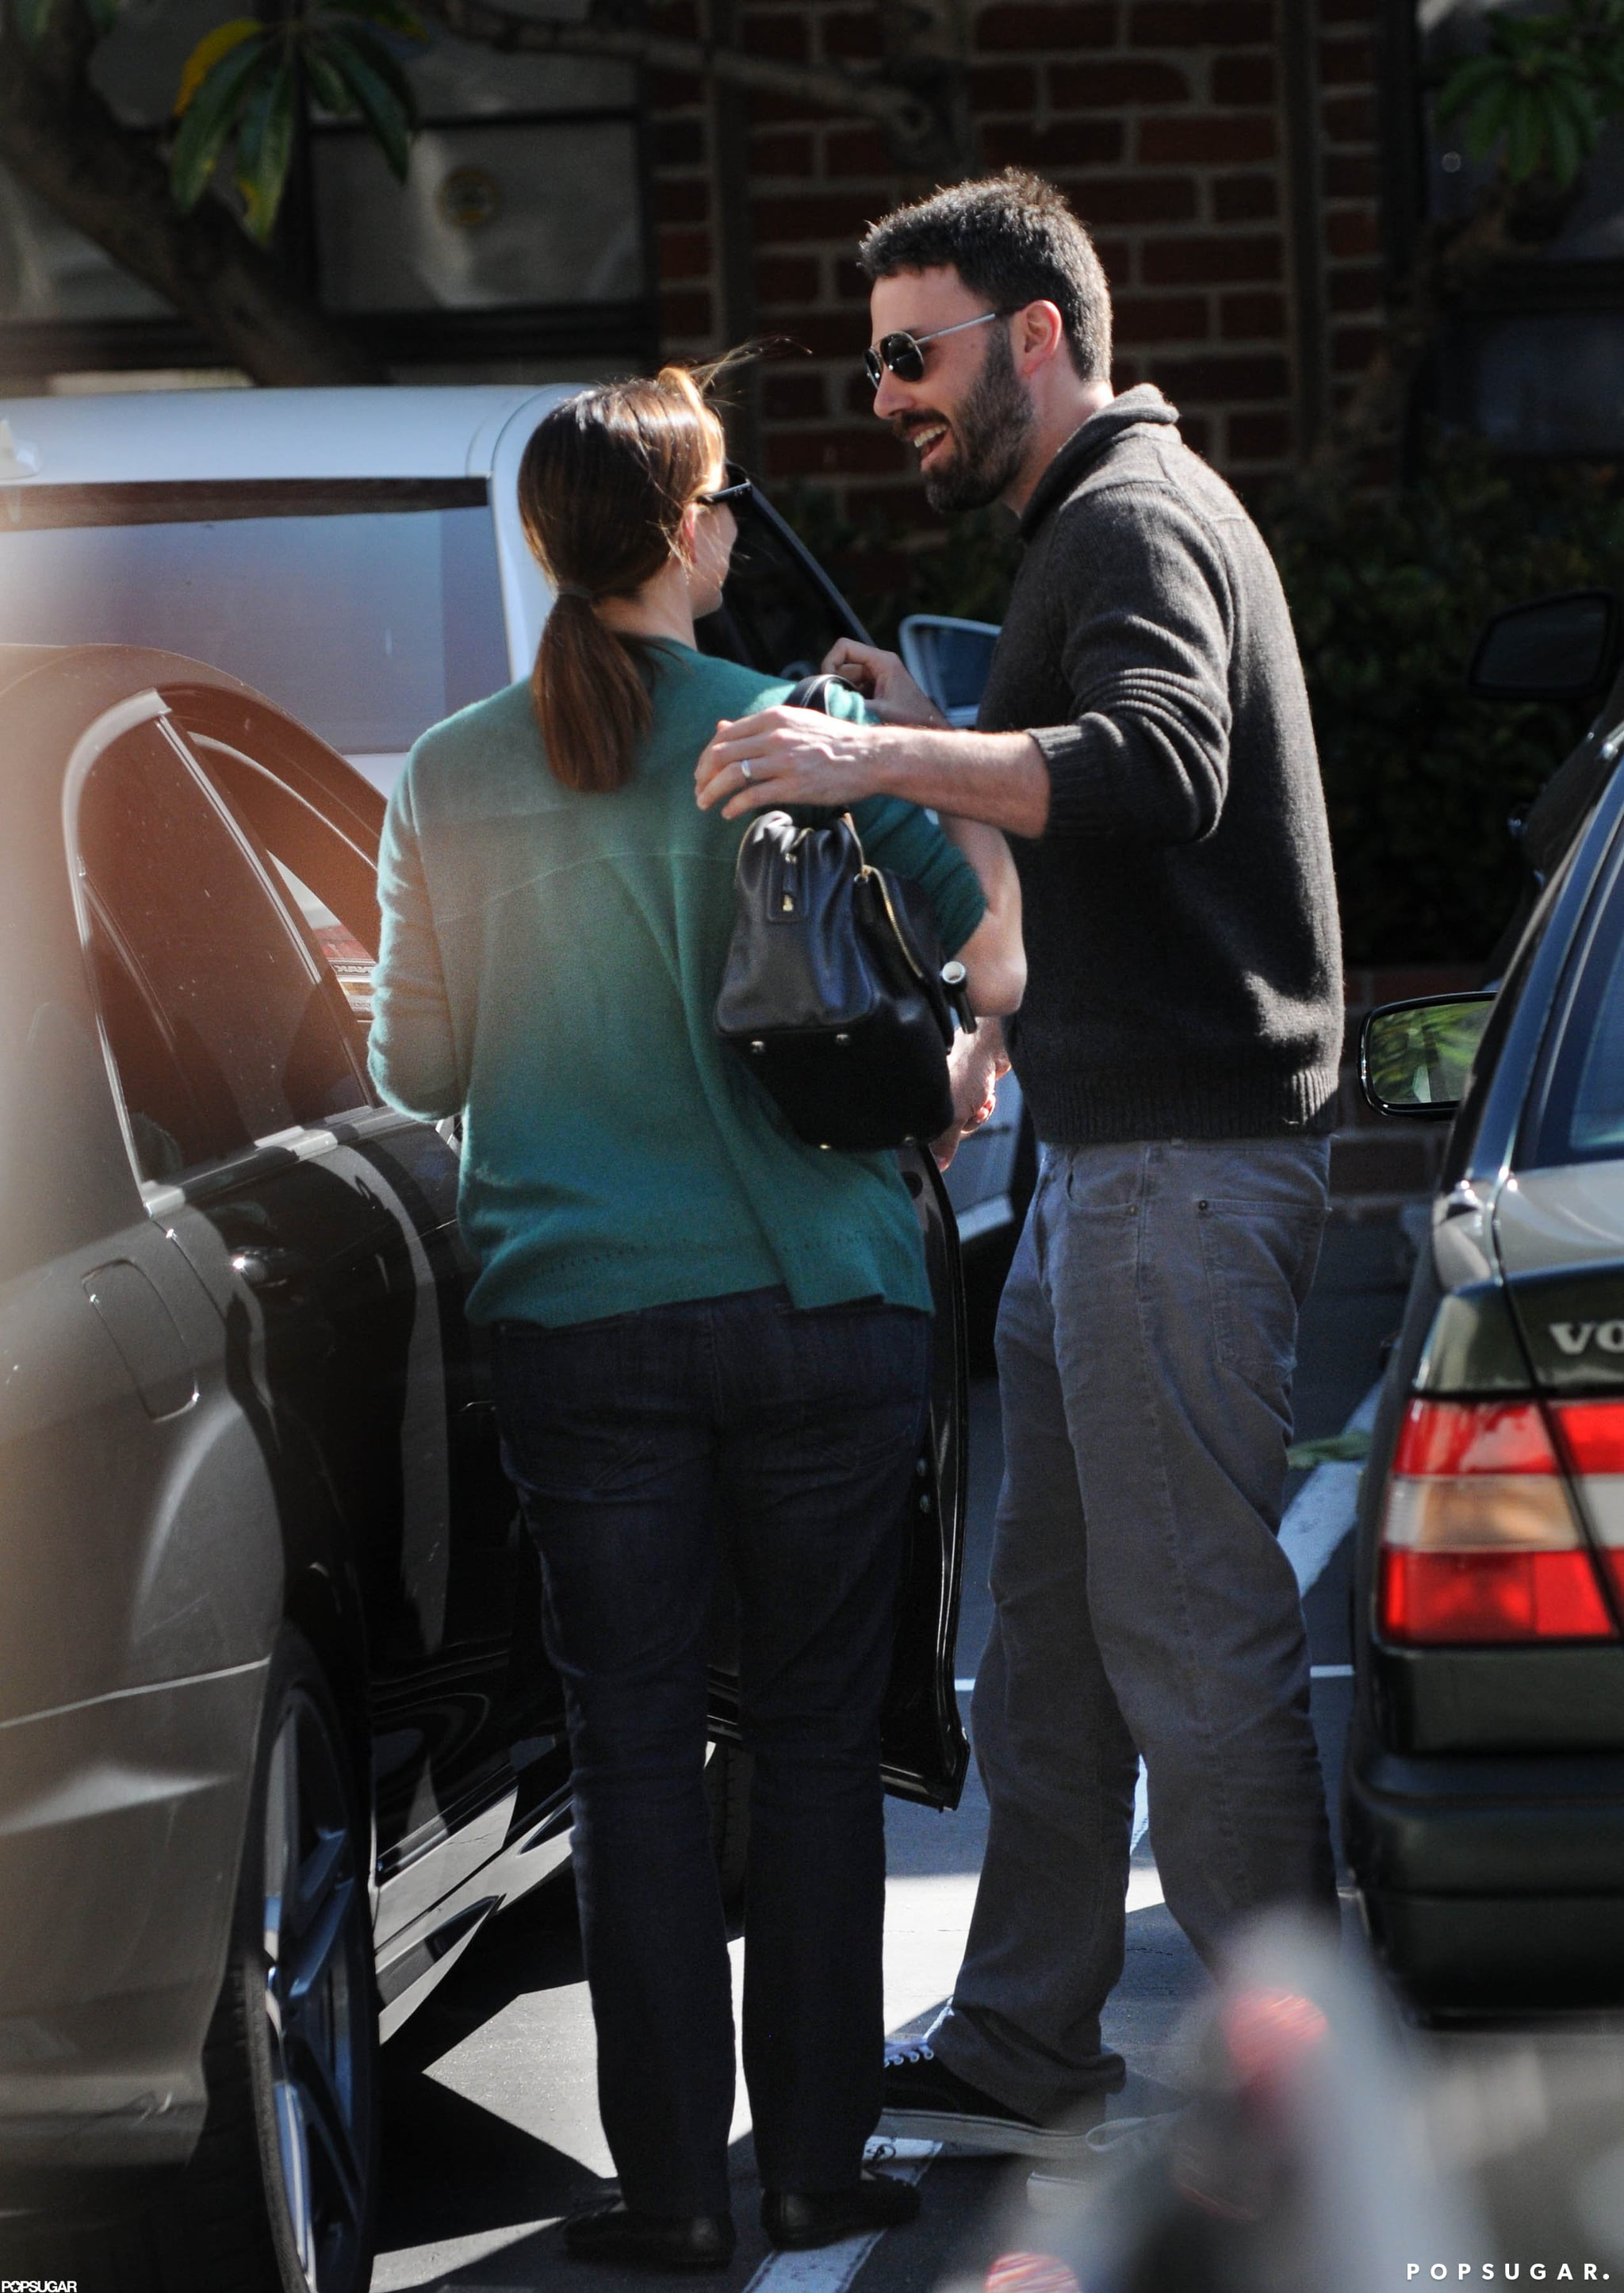 Ben Affleck and Jennifer Garner were affectionate while running errands together in LA.